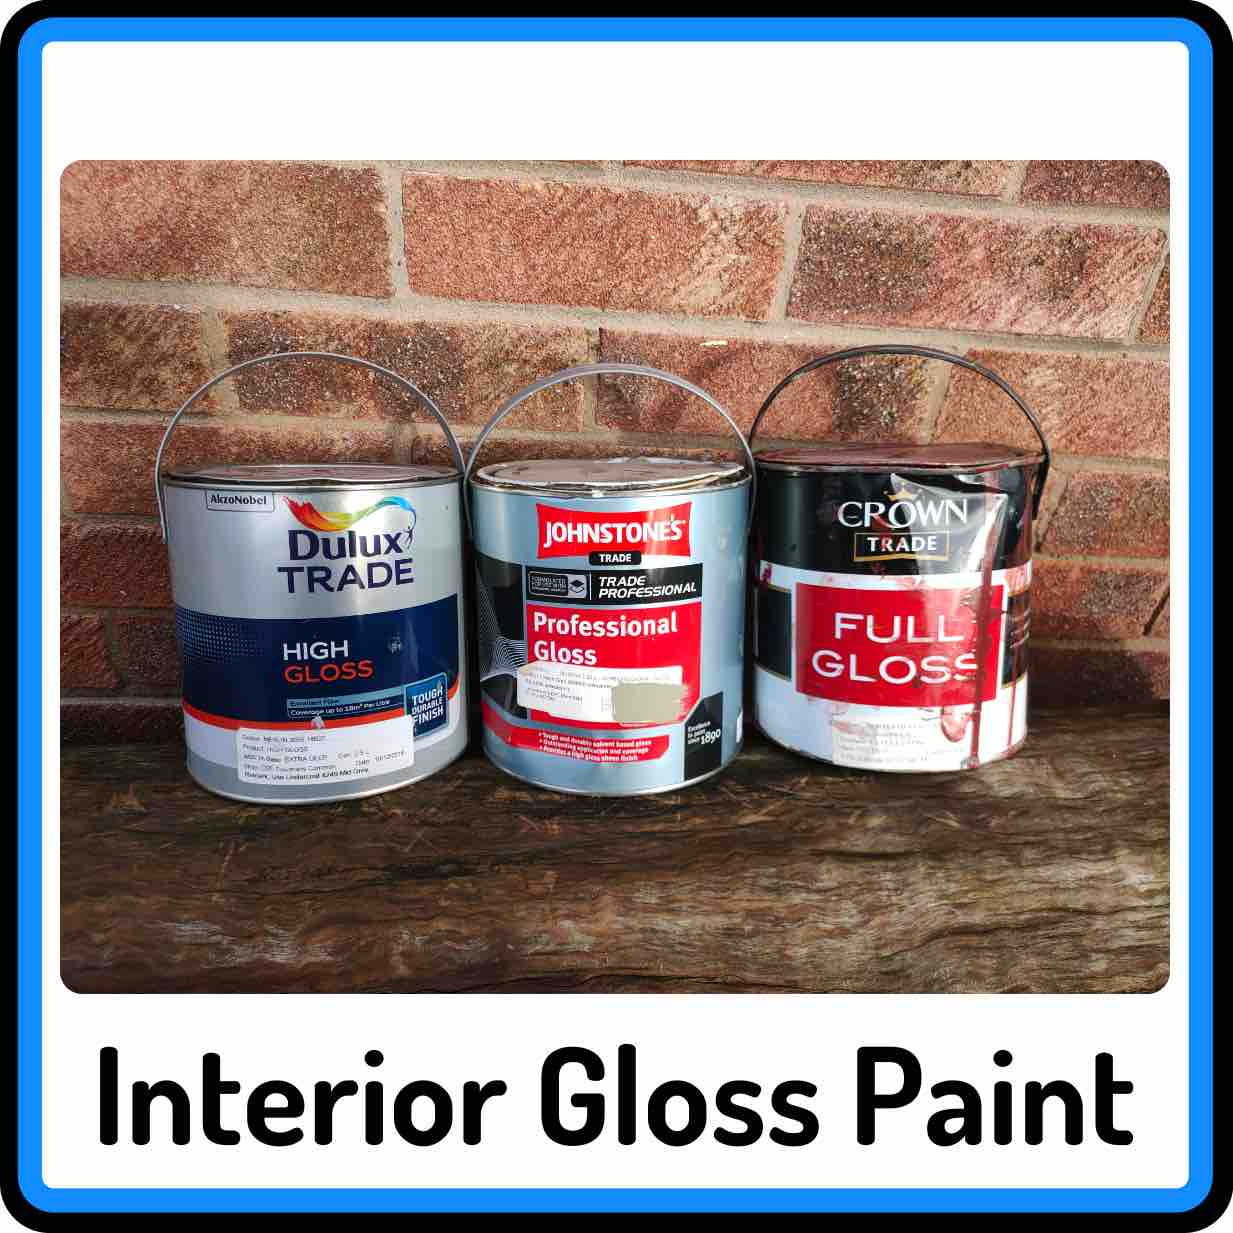 View our selection of Interior Gloss Paints